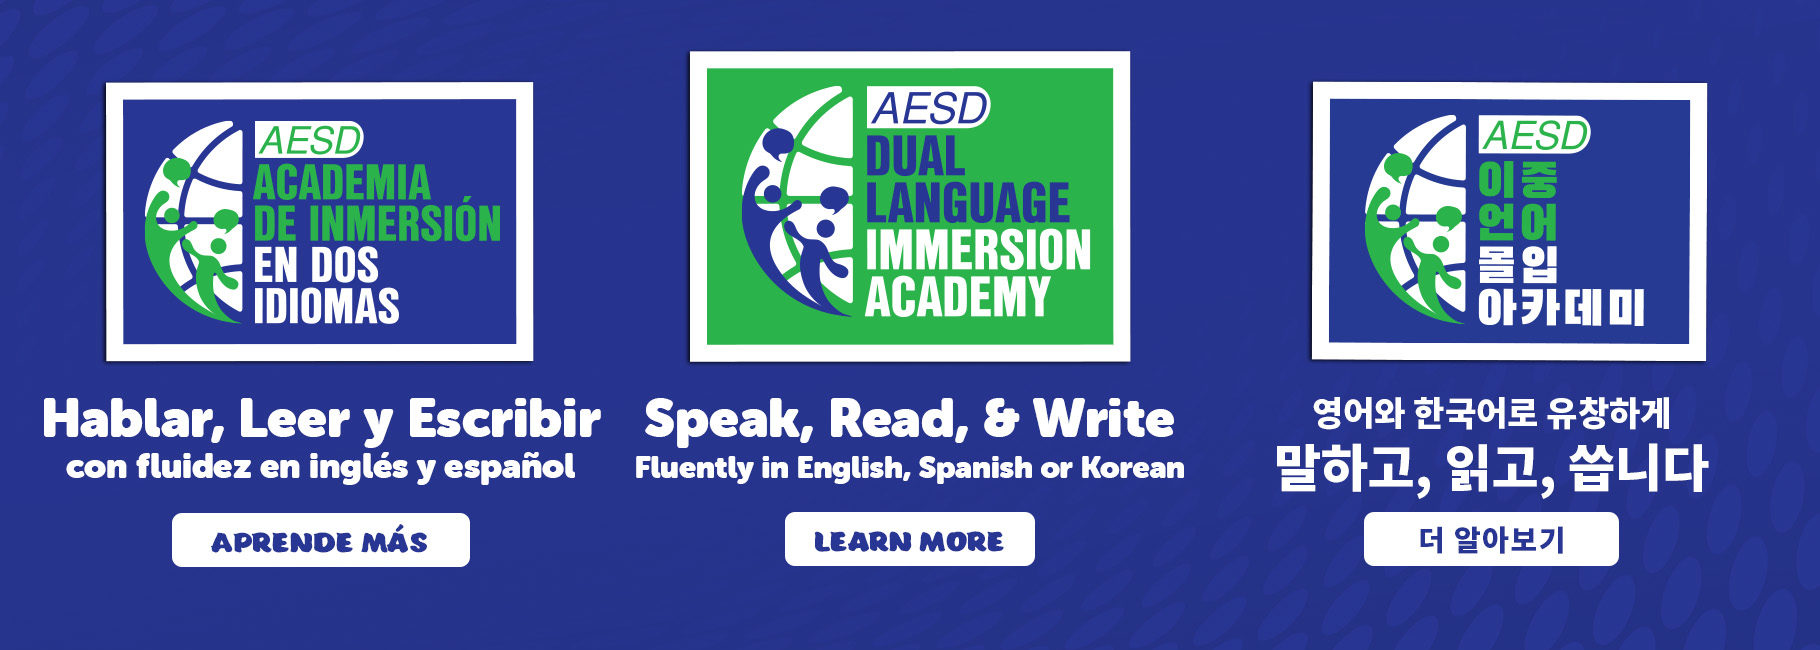 Click to learn more about Dual Language Immersion in English, Spanish and Korean.